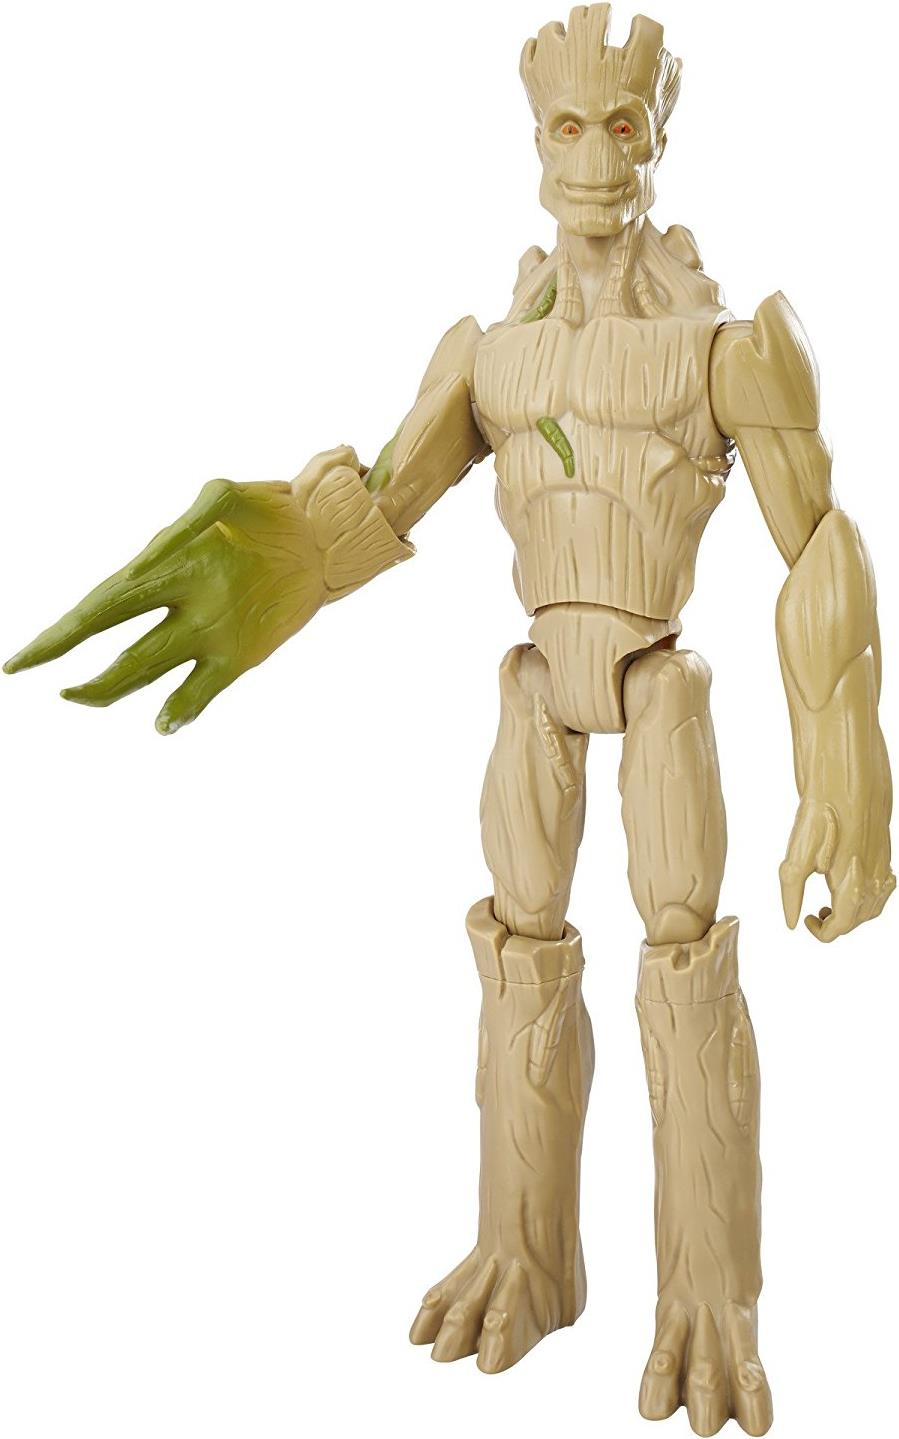 Hasbro Guardians of the Galaxy Figure - Growing Groot Hasbro, Guardians of the Galaxy, Action Figures, 2016, scifi, movie